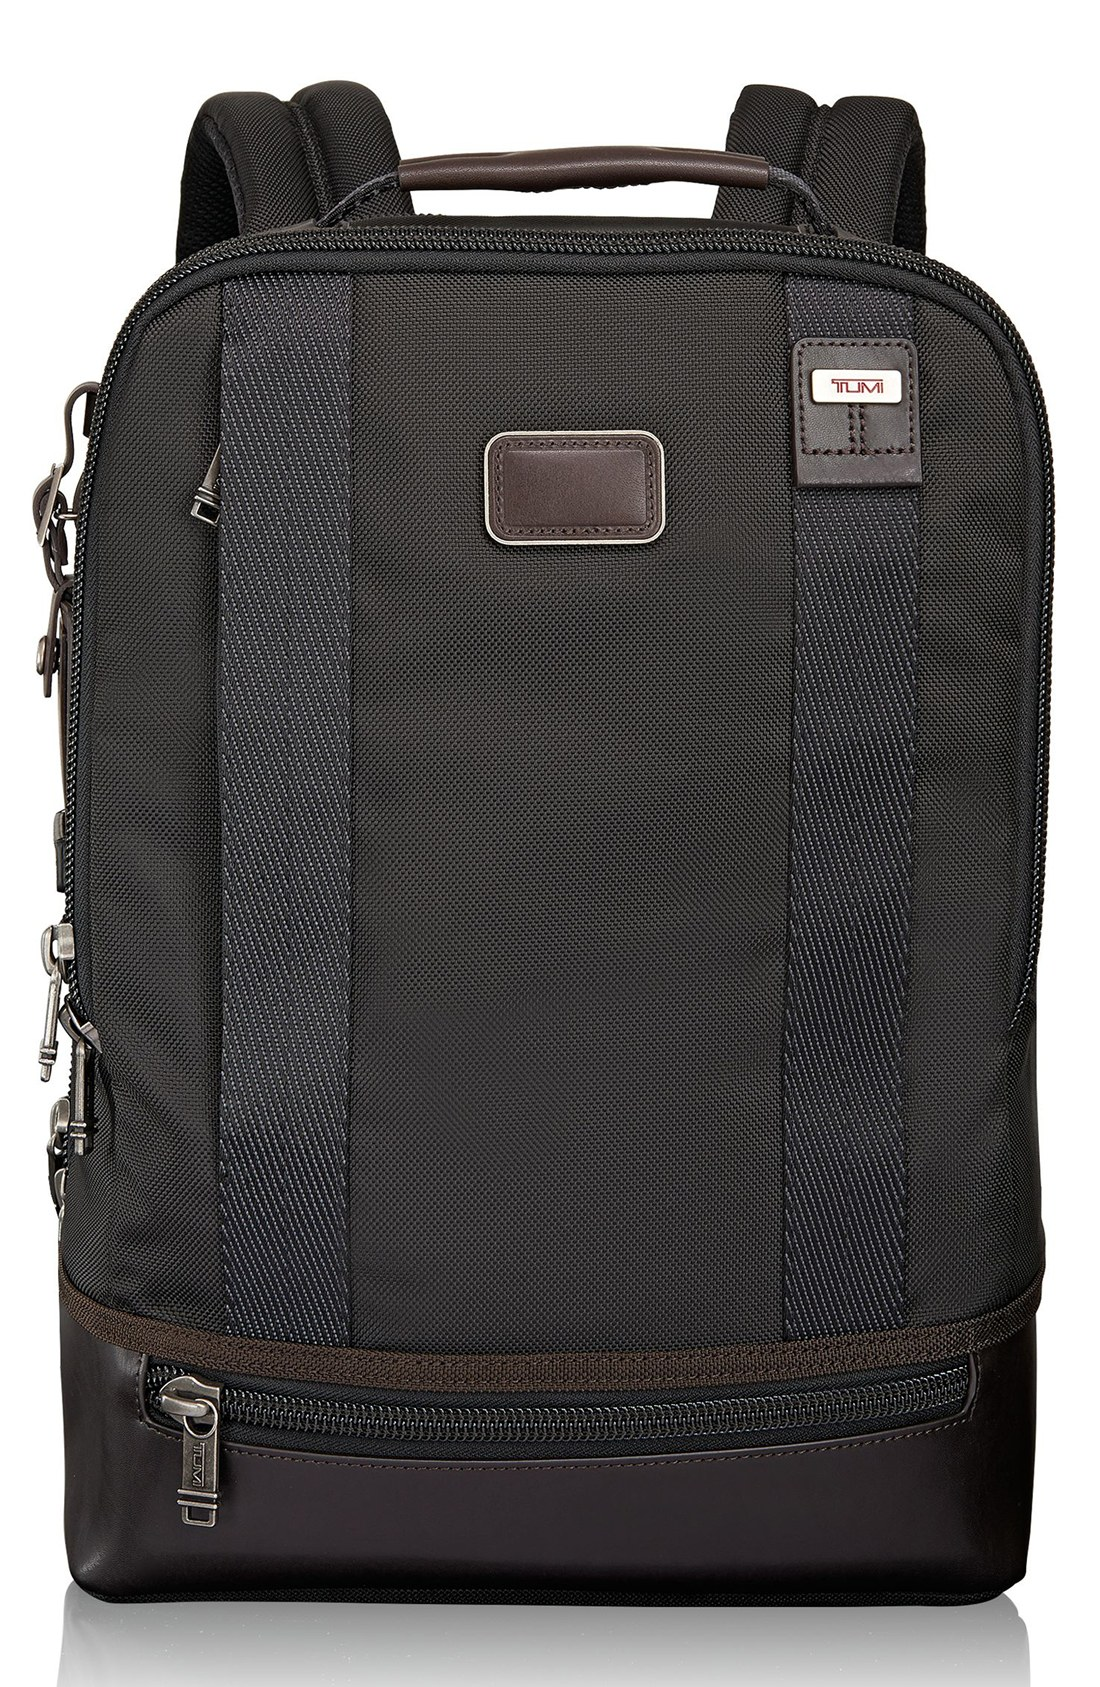 Tumi Alpha Bravo | Tumi Backpack Ebay | Tumi Alpha Bravo Lejeune Backpack Tote